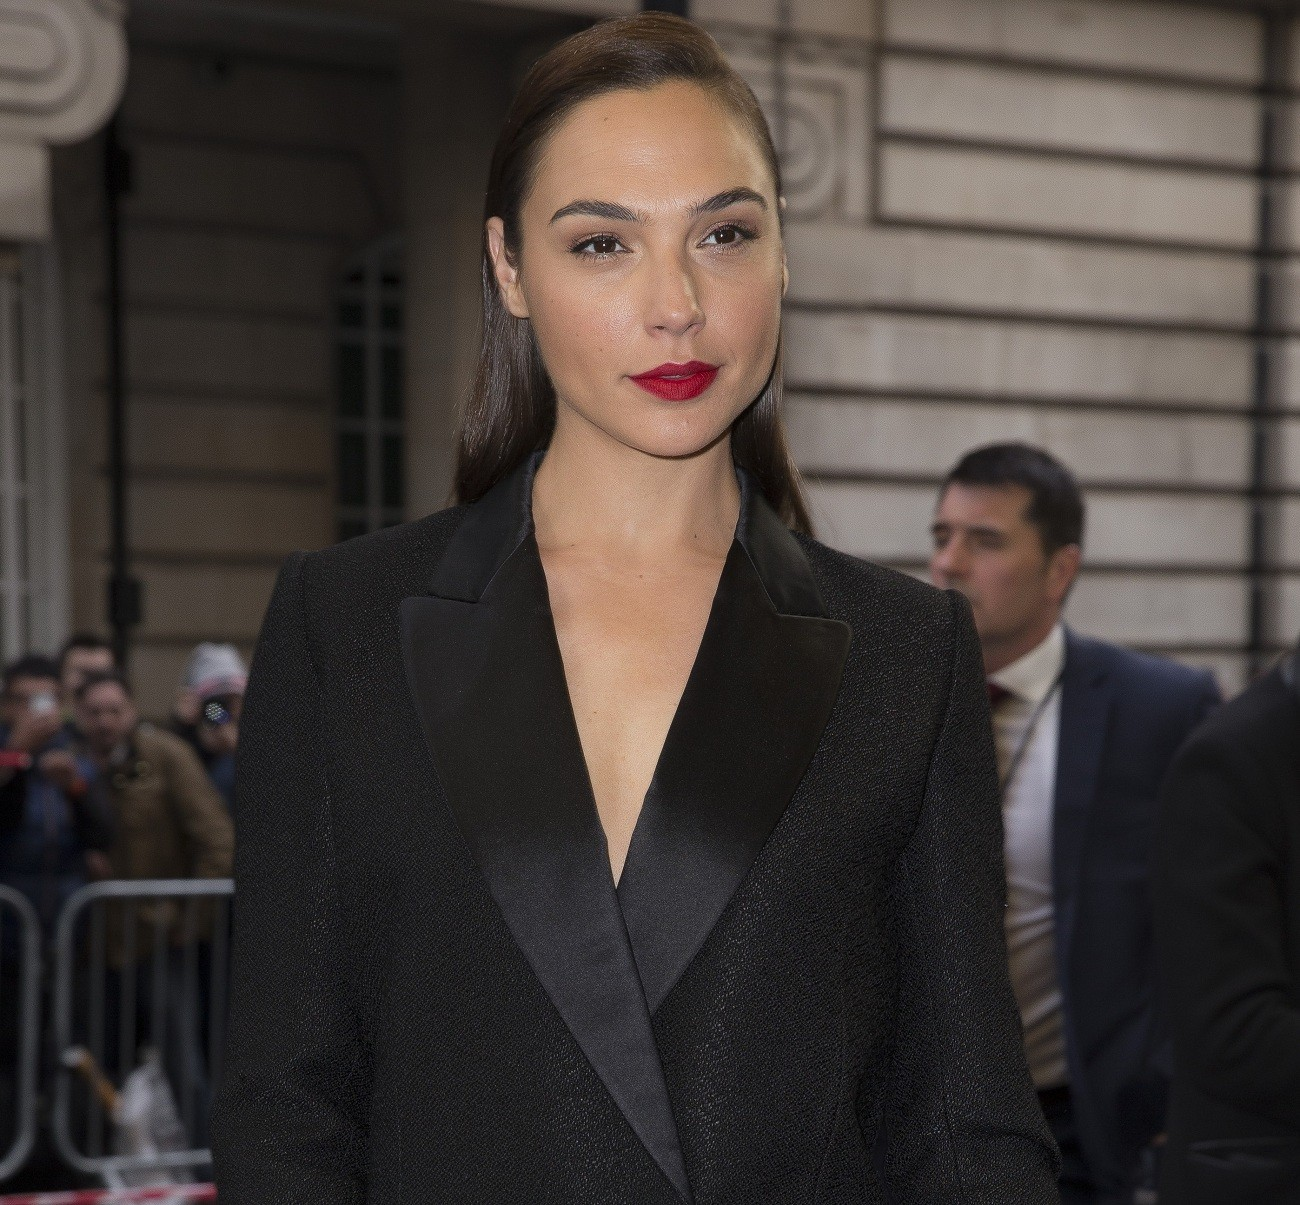 Gal Gadot's military training helped her become Wonder Woman